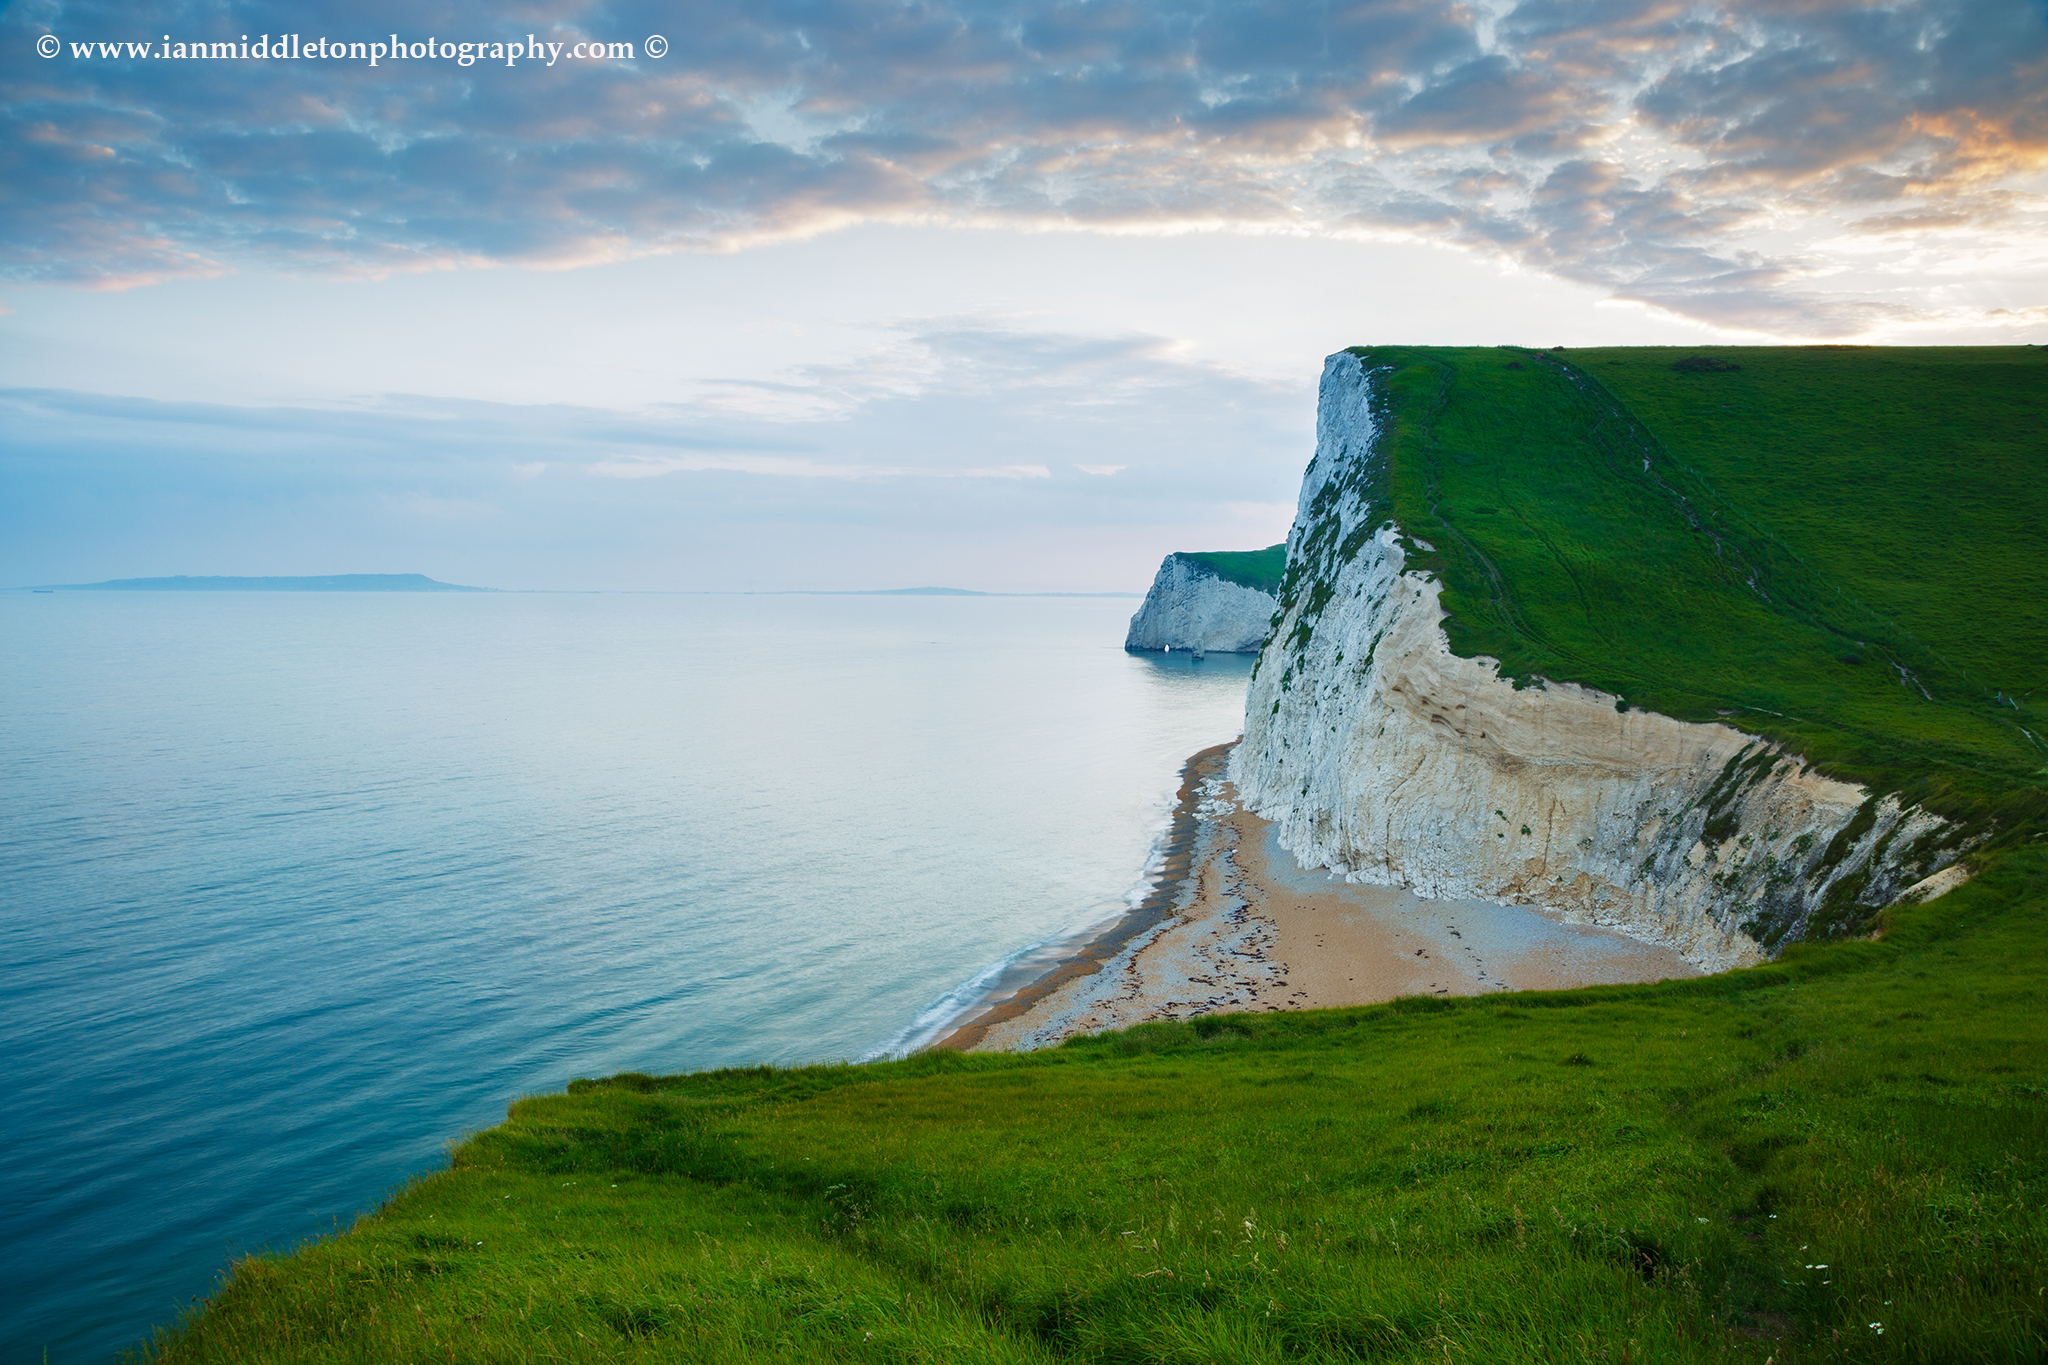 View across the cliffs to Bats Head from the cliffs above Durdle Door beach as the sun goes down for the evening, Dorset, England. Durdle door is one of the many stunning locations to visit on the Jurassic coast in southern England.